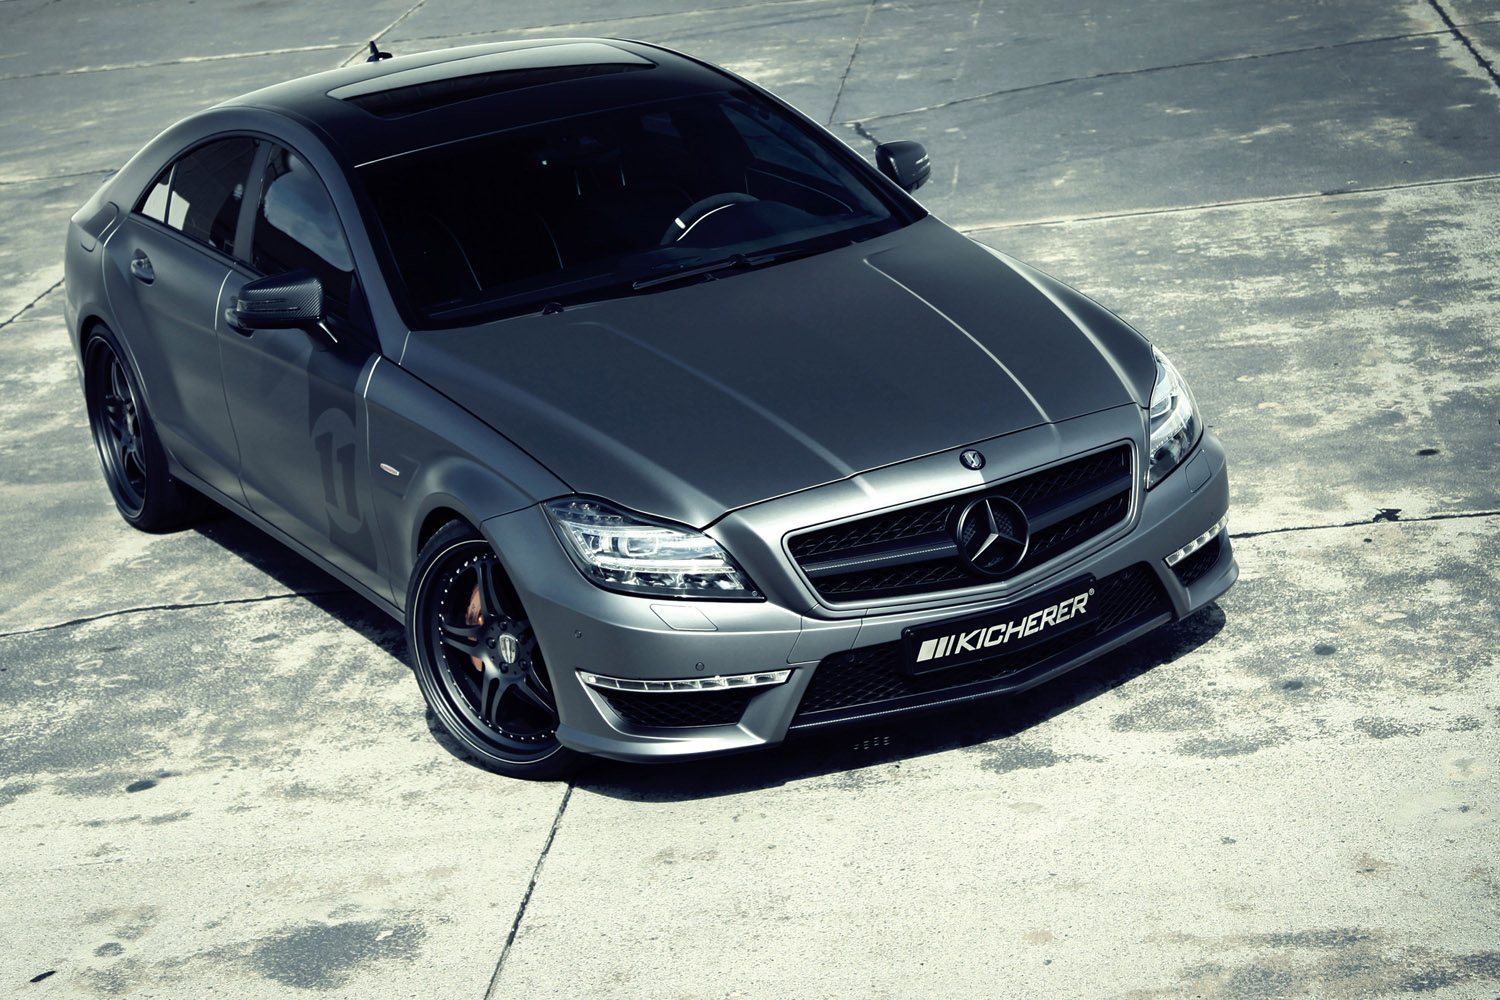 2013 kicherer mercedes benz cls 63 amg yachting cls tuning wallpaper 1500x1000 82392. Black Bedroom Furniture Sets. Home Design Ideas